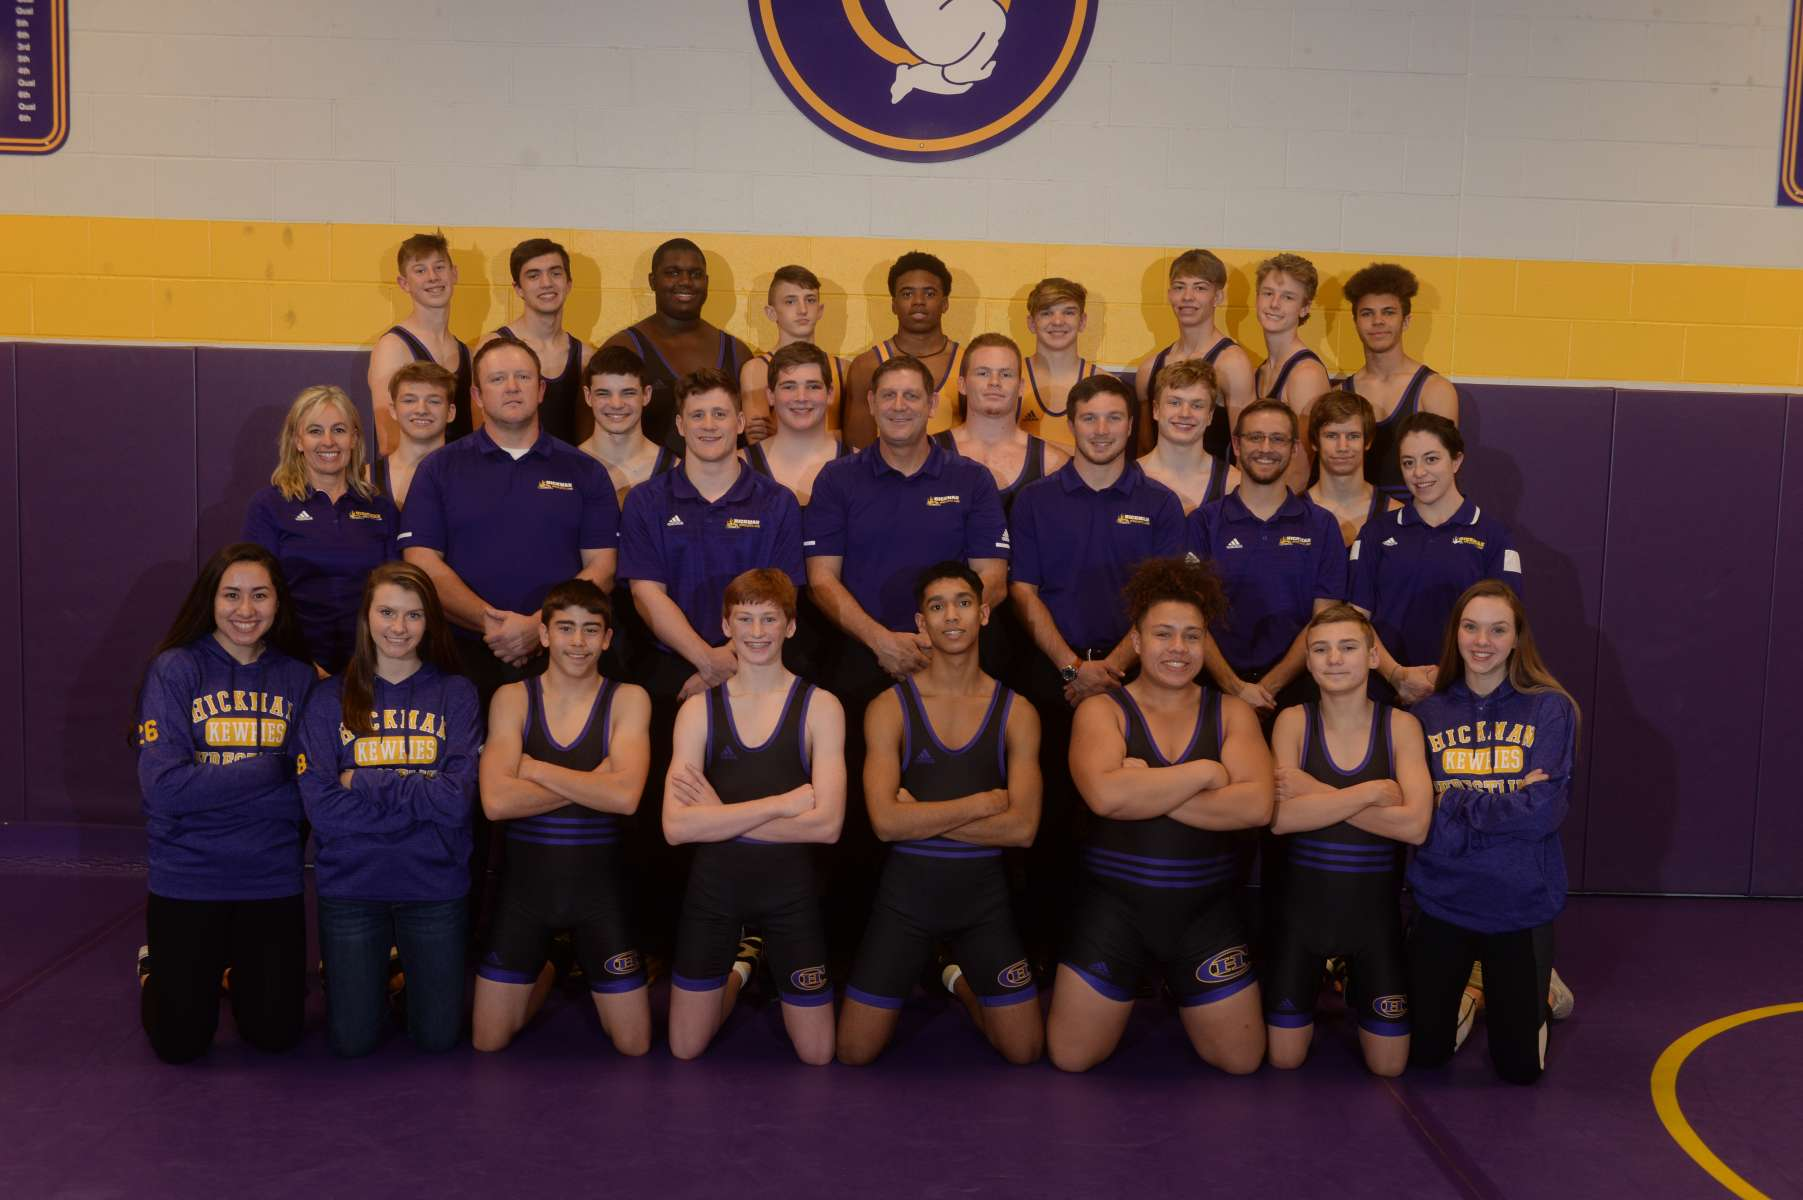 Boys Wrestling Team Photo